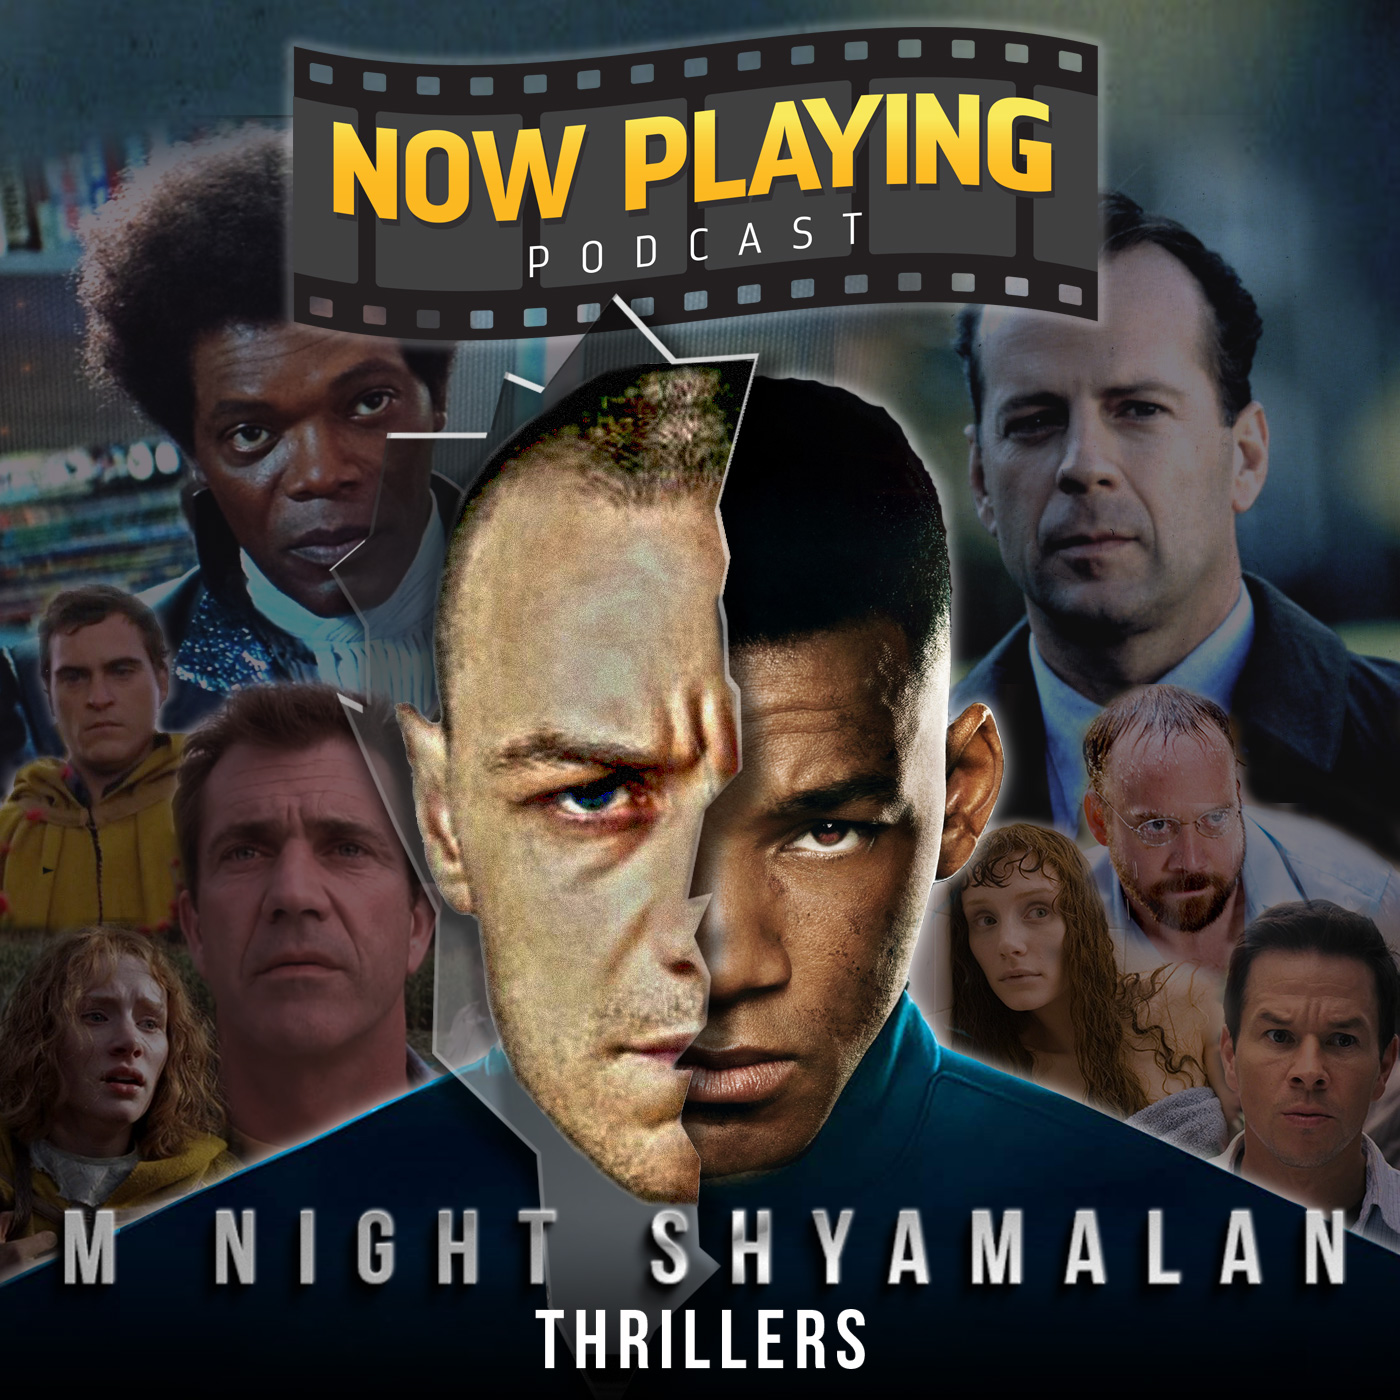 M. Night Shyamalan Thrillers